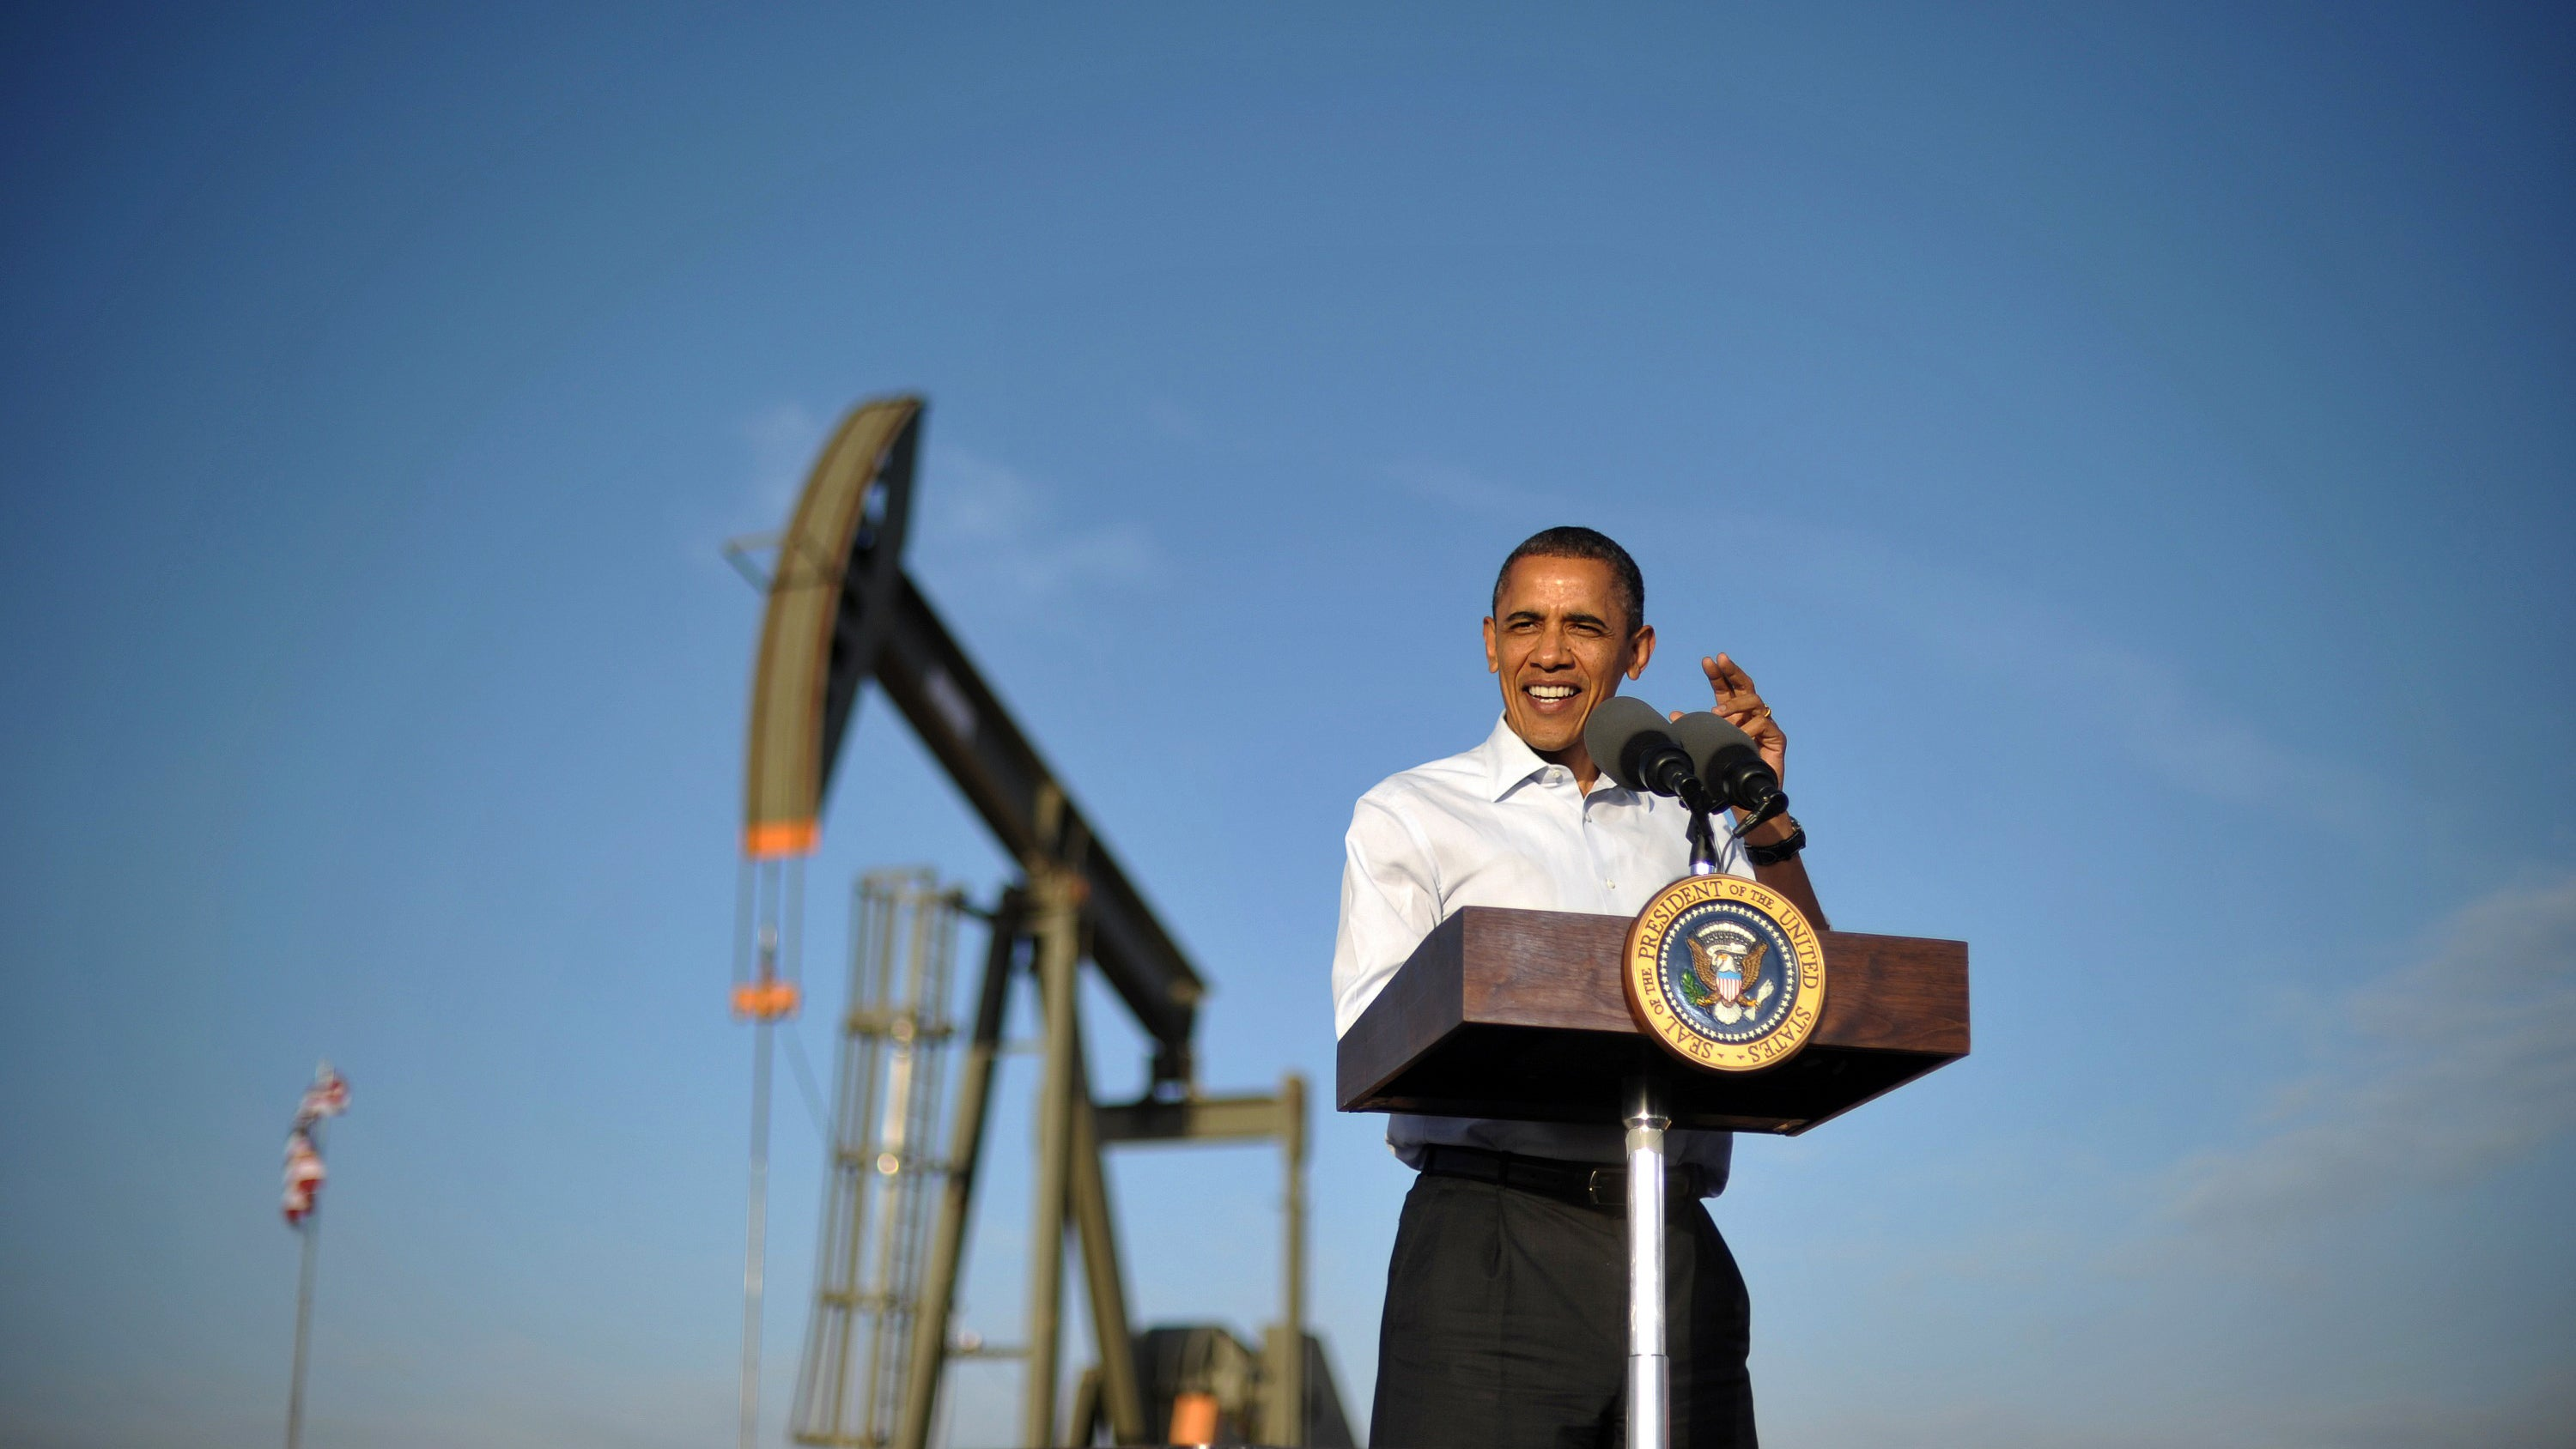 Obama Wants To Tax Oil Companies And Give The Money To Green Transportation Projects